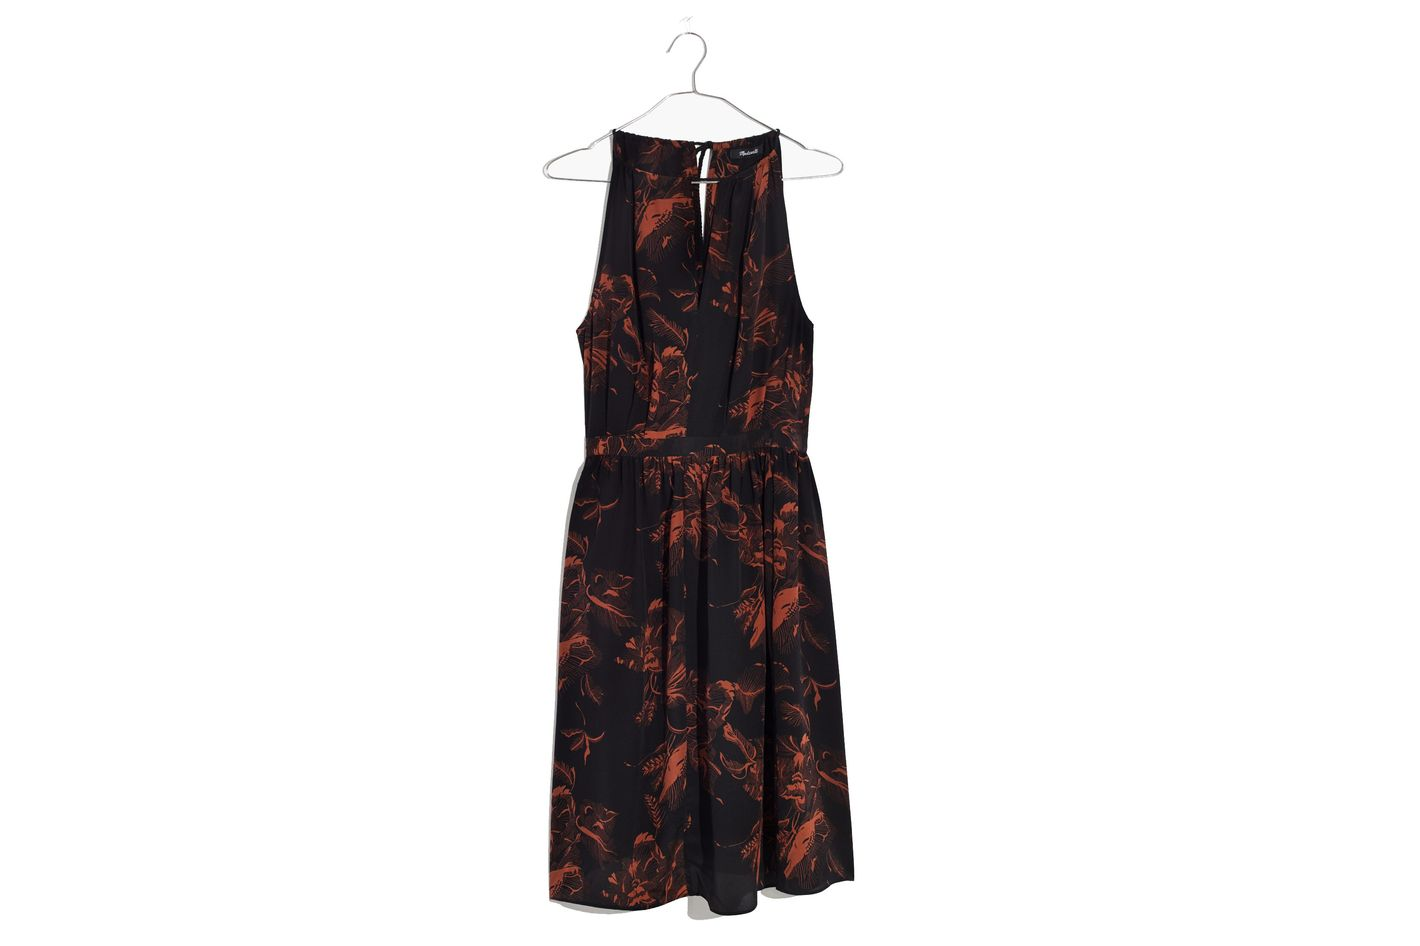 Madewell x No.6 Silk Keyhole Dress